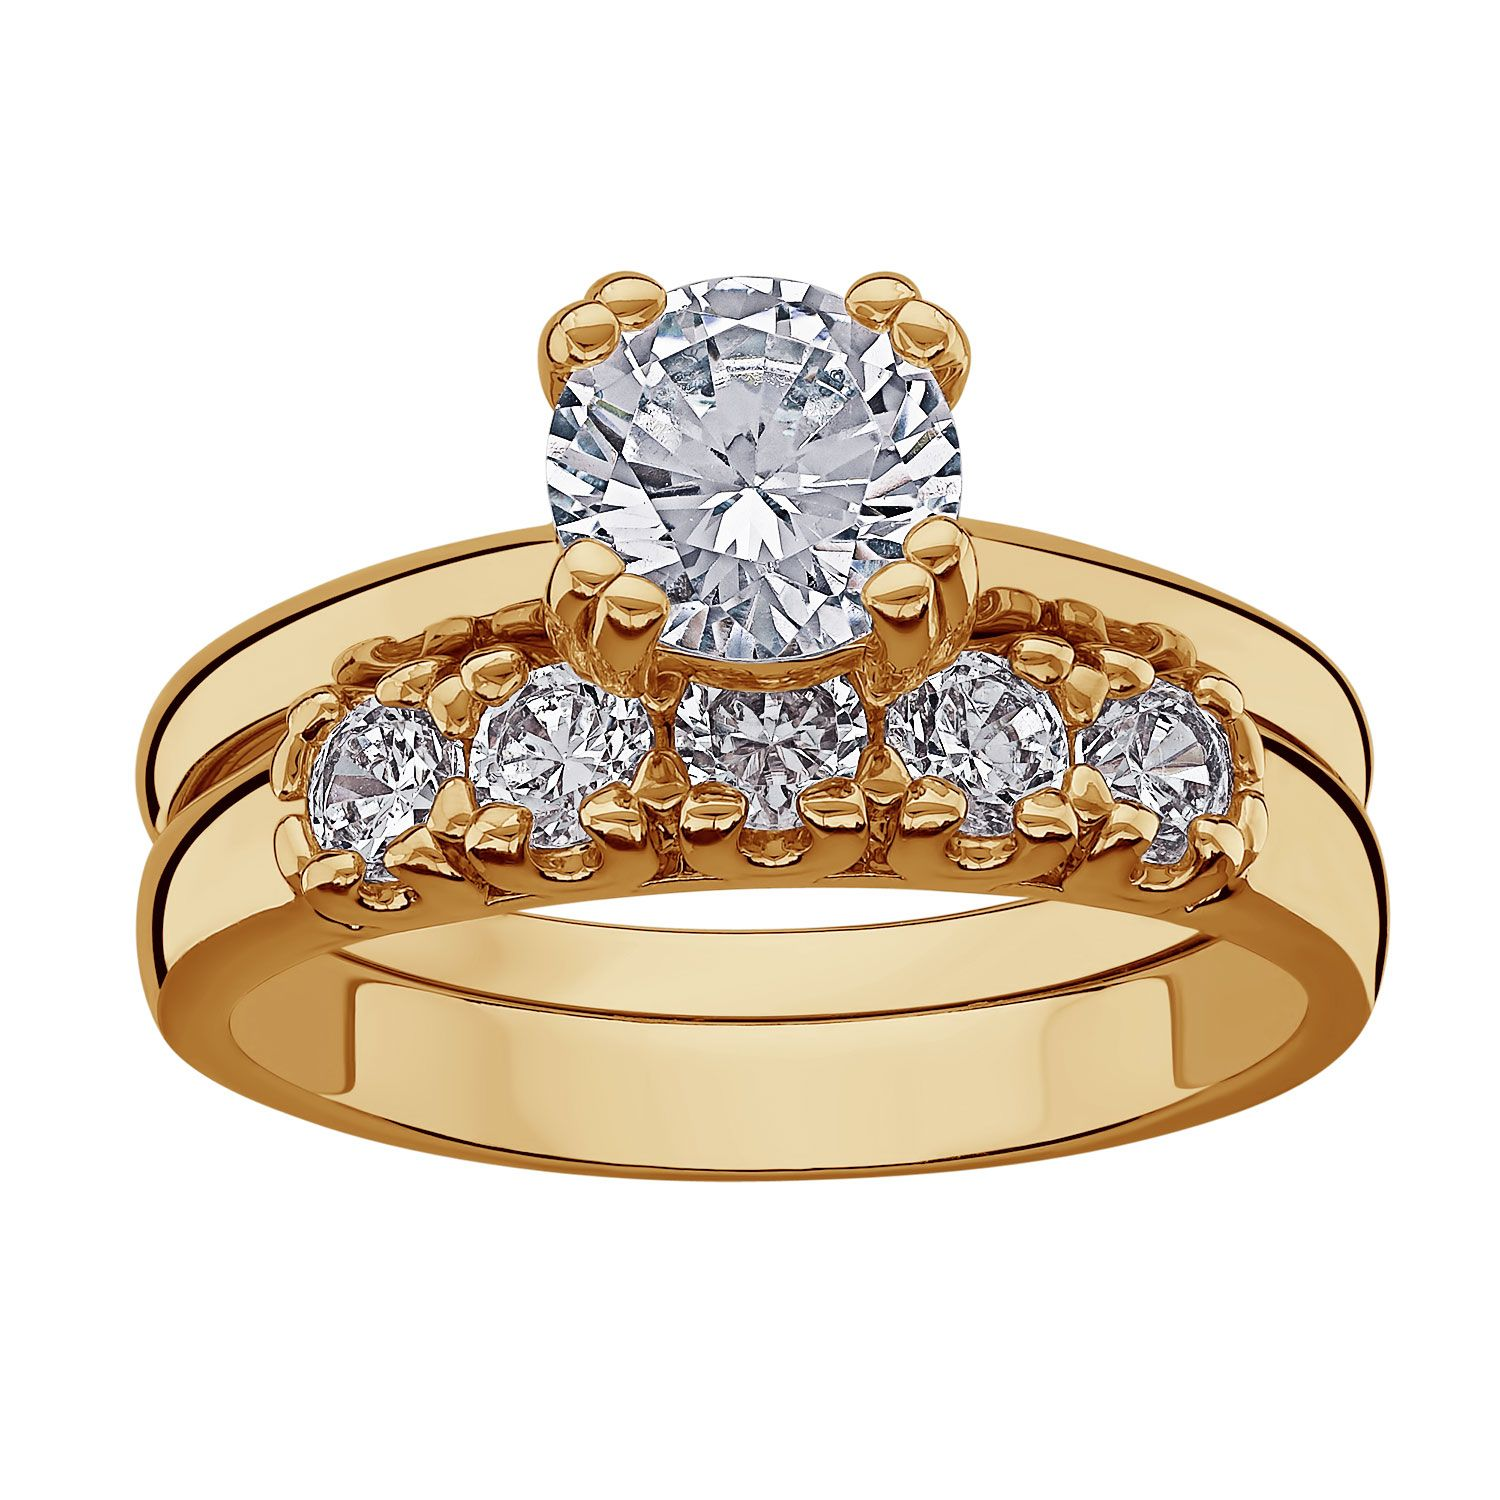 14k Gold Wedding Ring Sets The Appeal Of The Matching Wedding Set